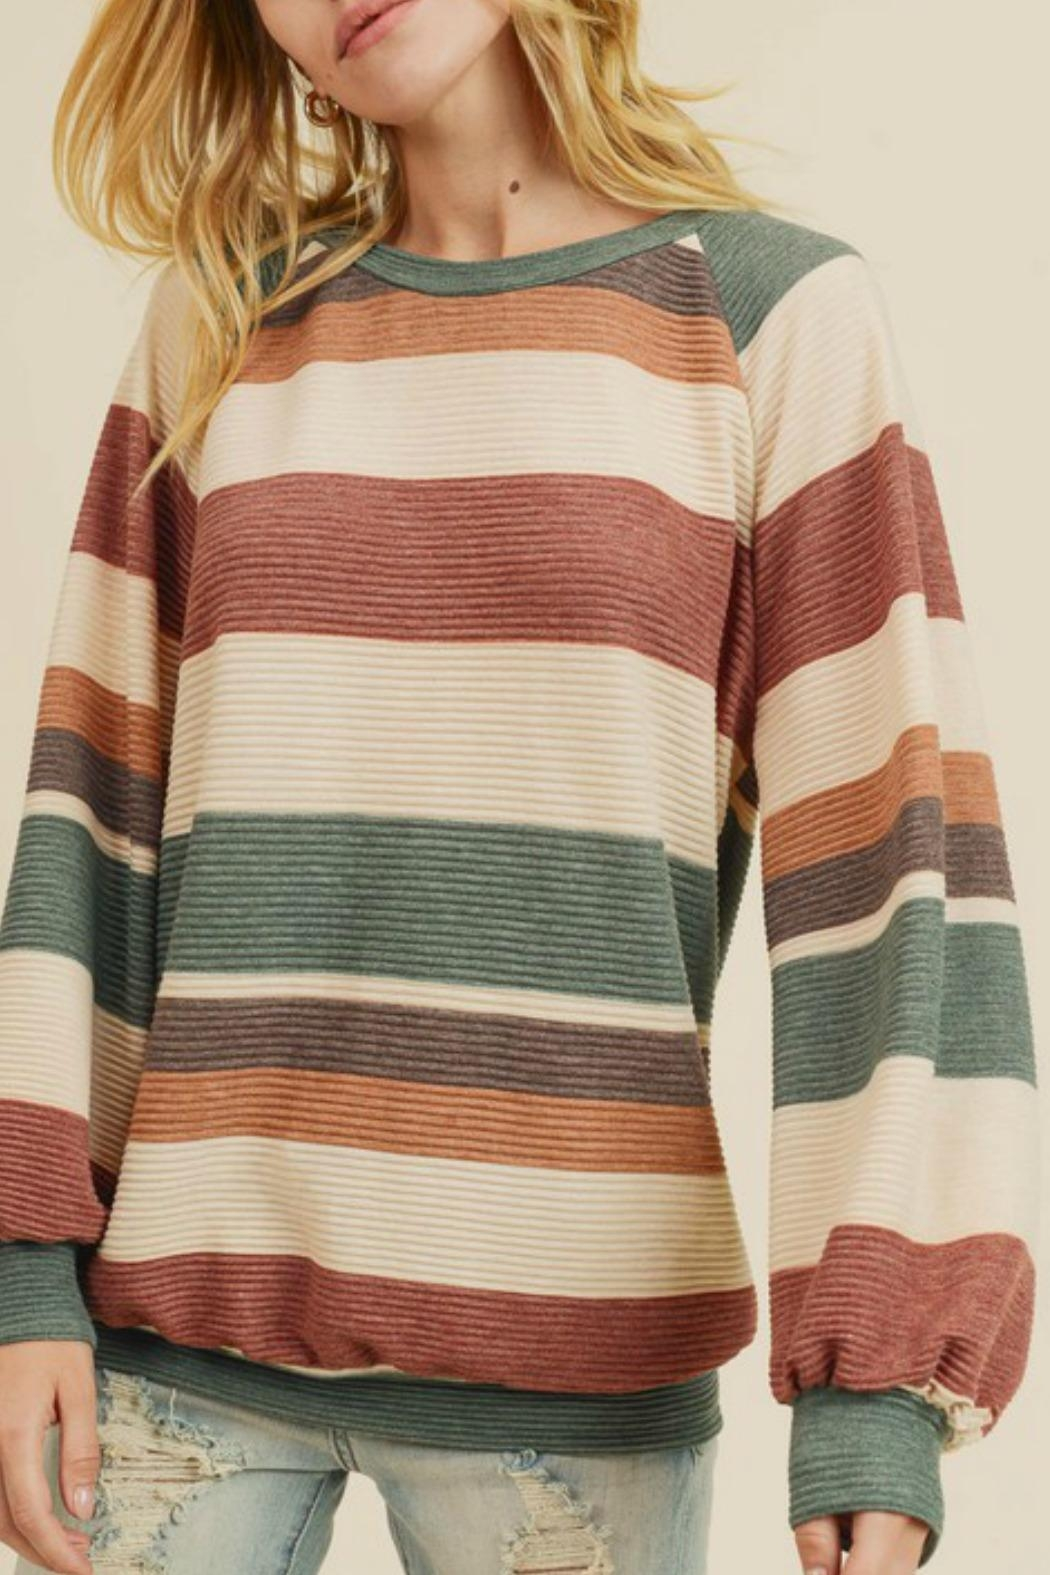 First Love Raegan Striped Sweater - Main Image